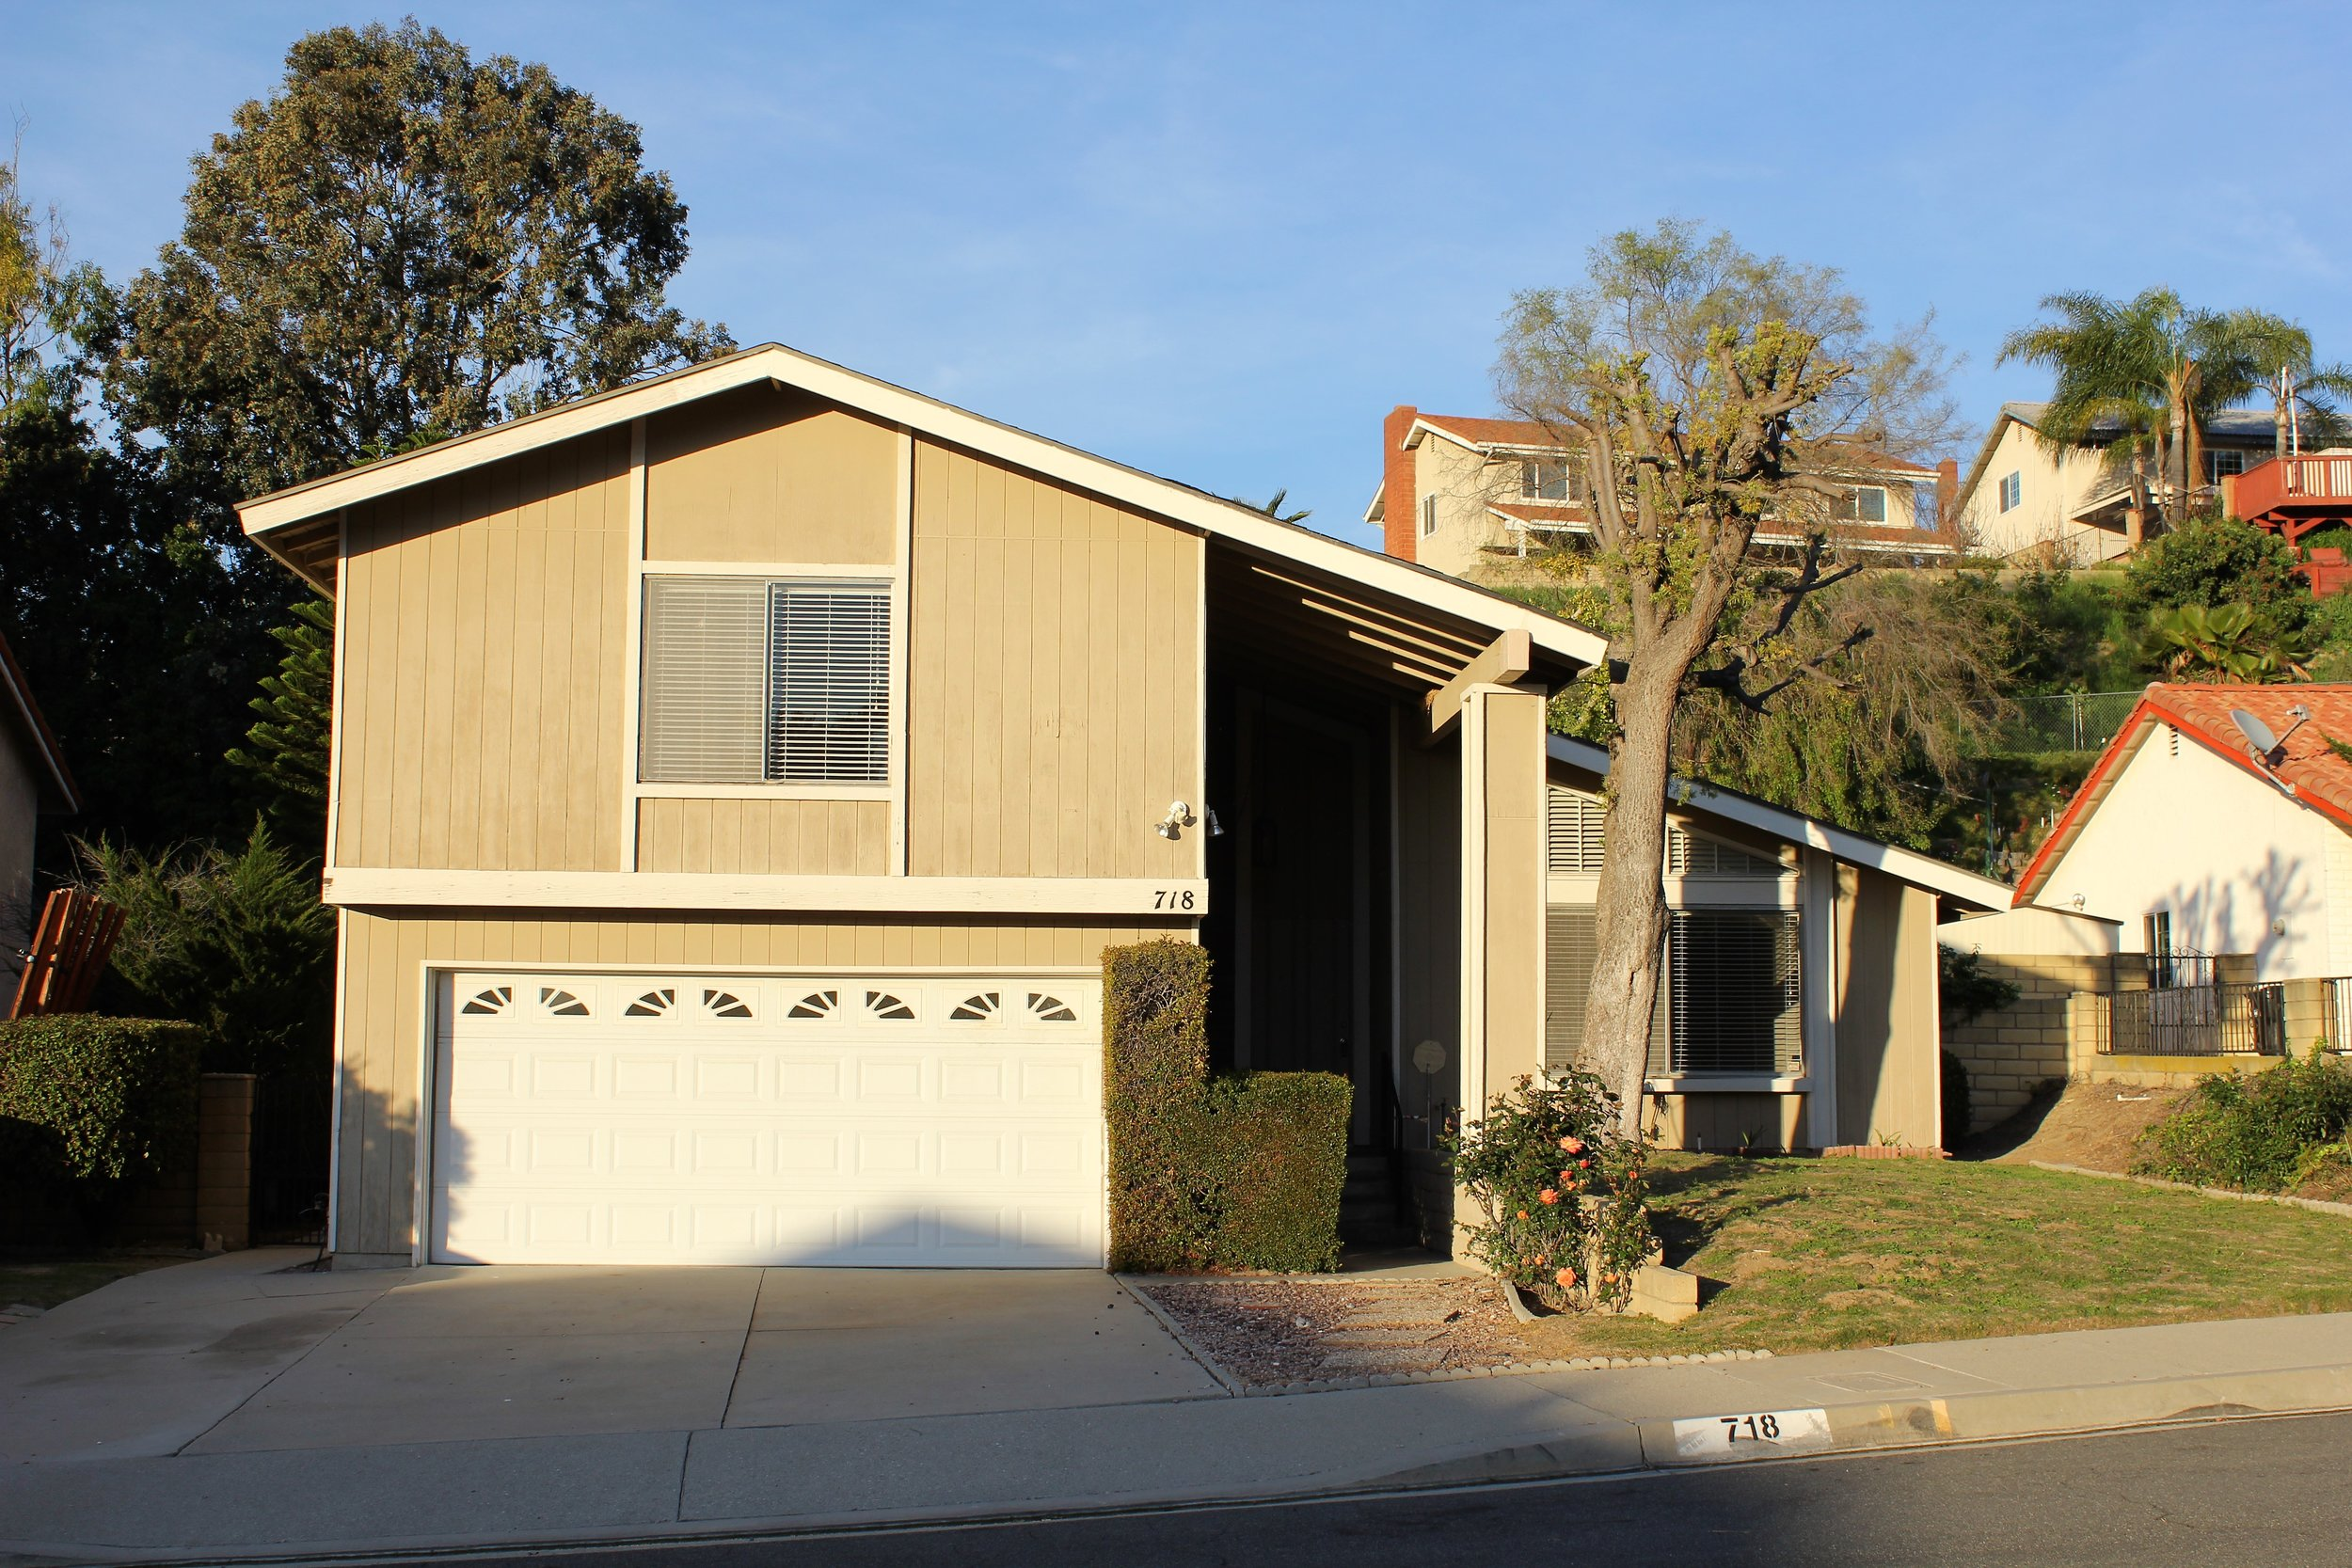 718 Panhandle - $2,550 / Month